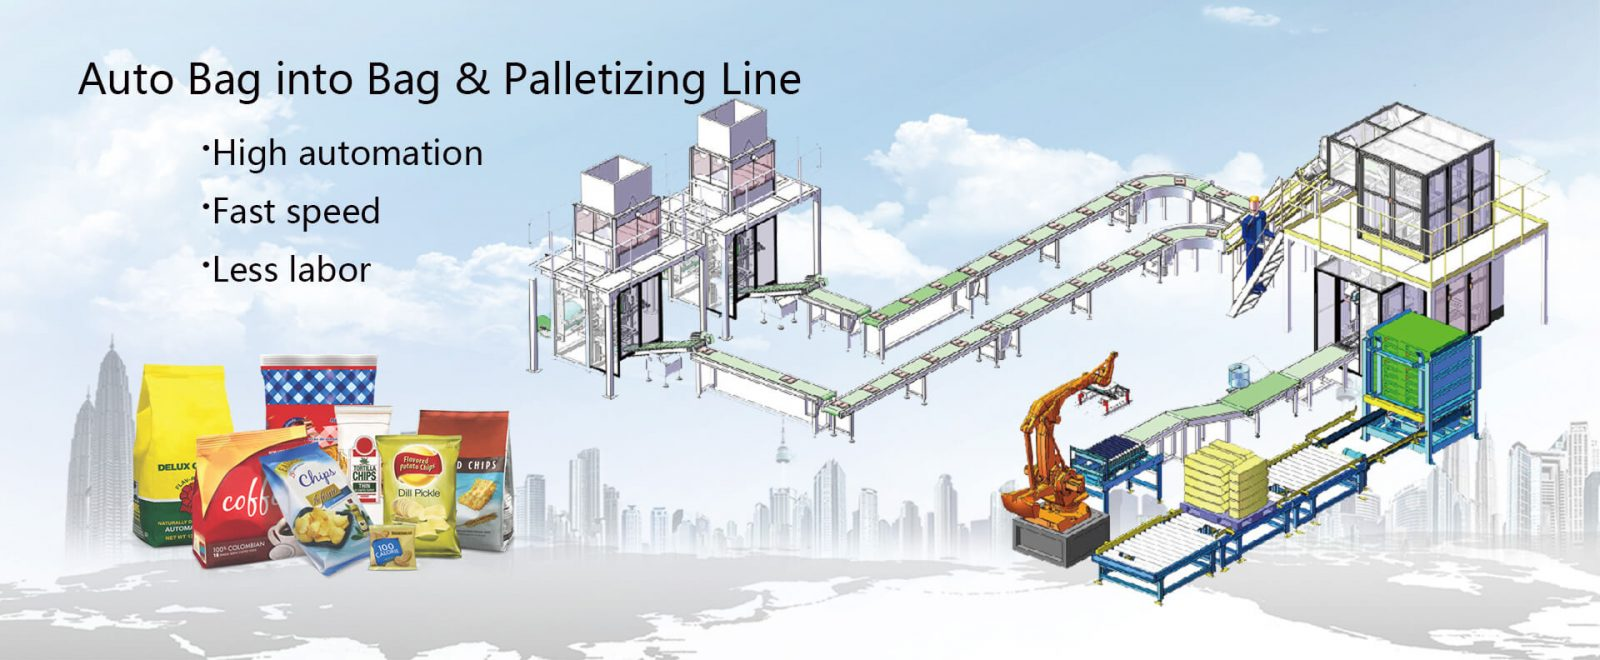 Auto Bag in Bag & Palletizing Line